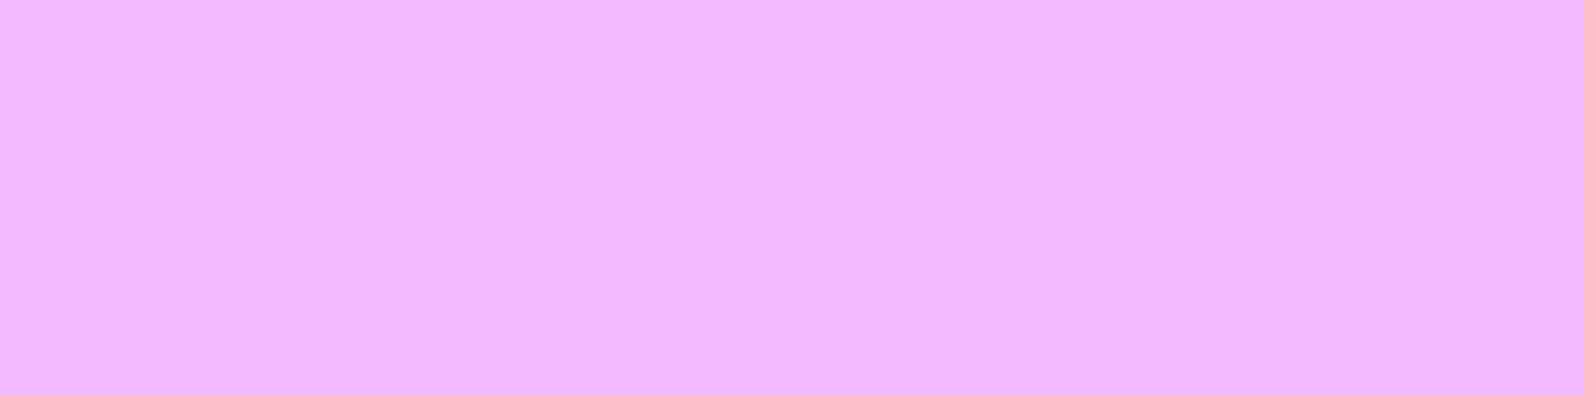 1584x396 Electric Lavender Solid Color Background